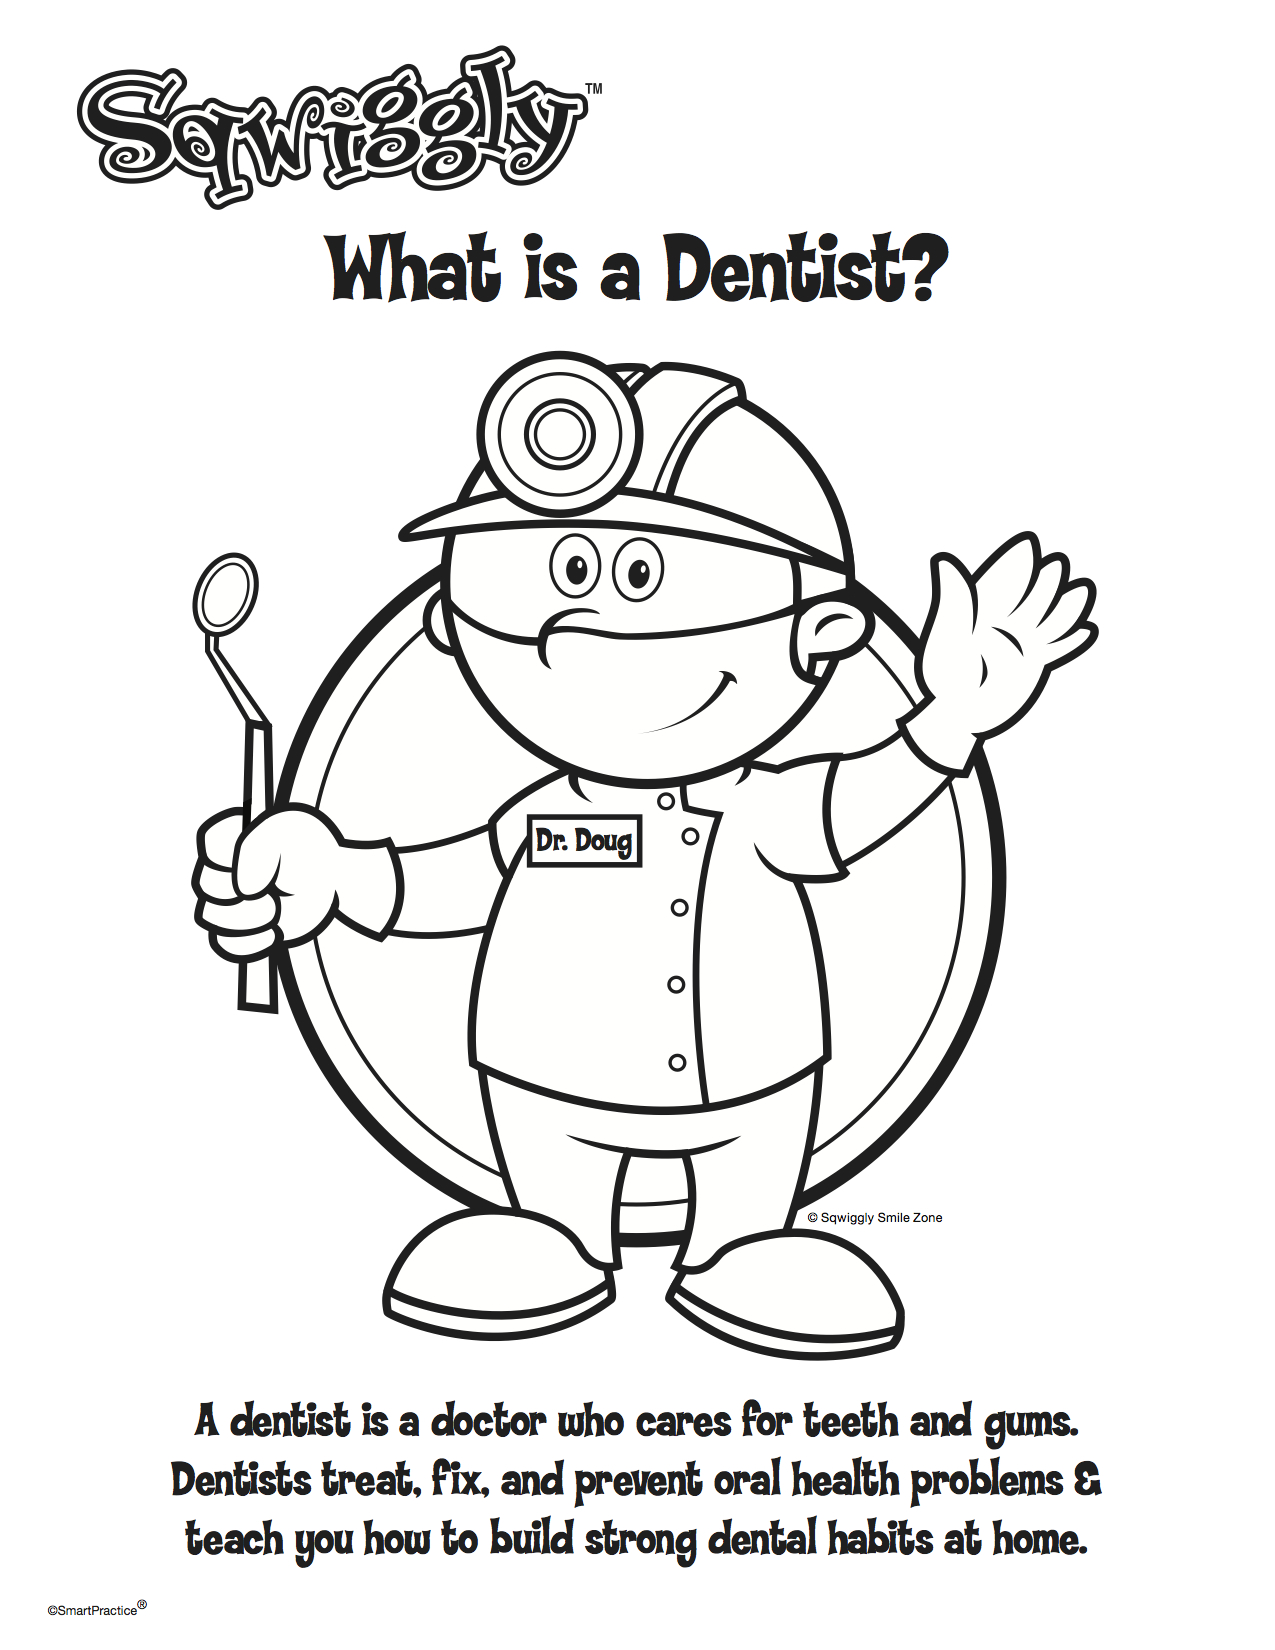 WhatIsDentist Web